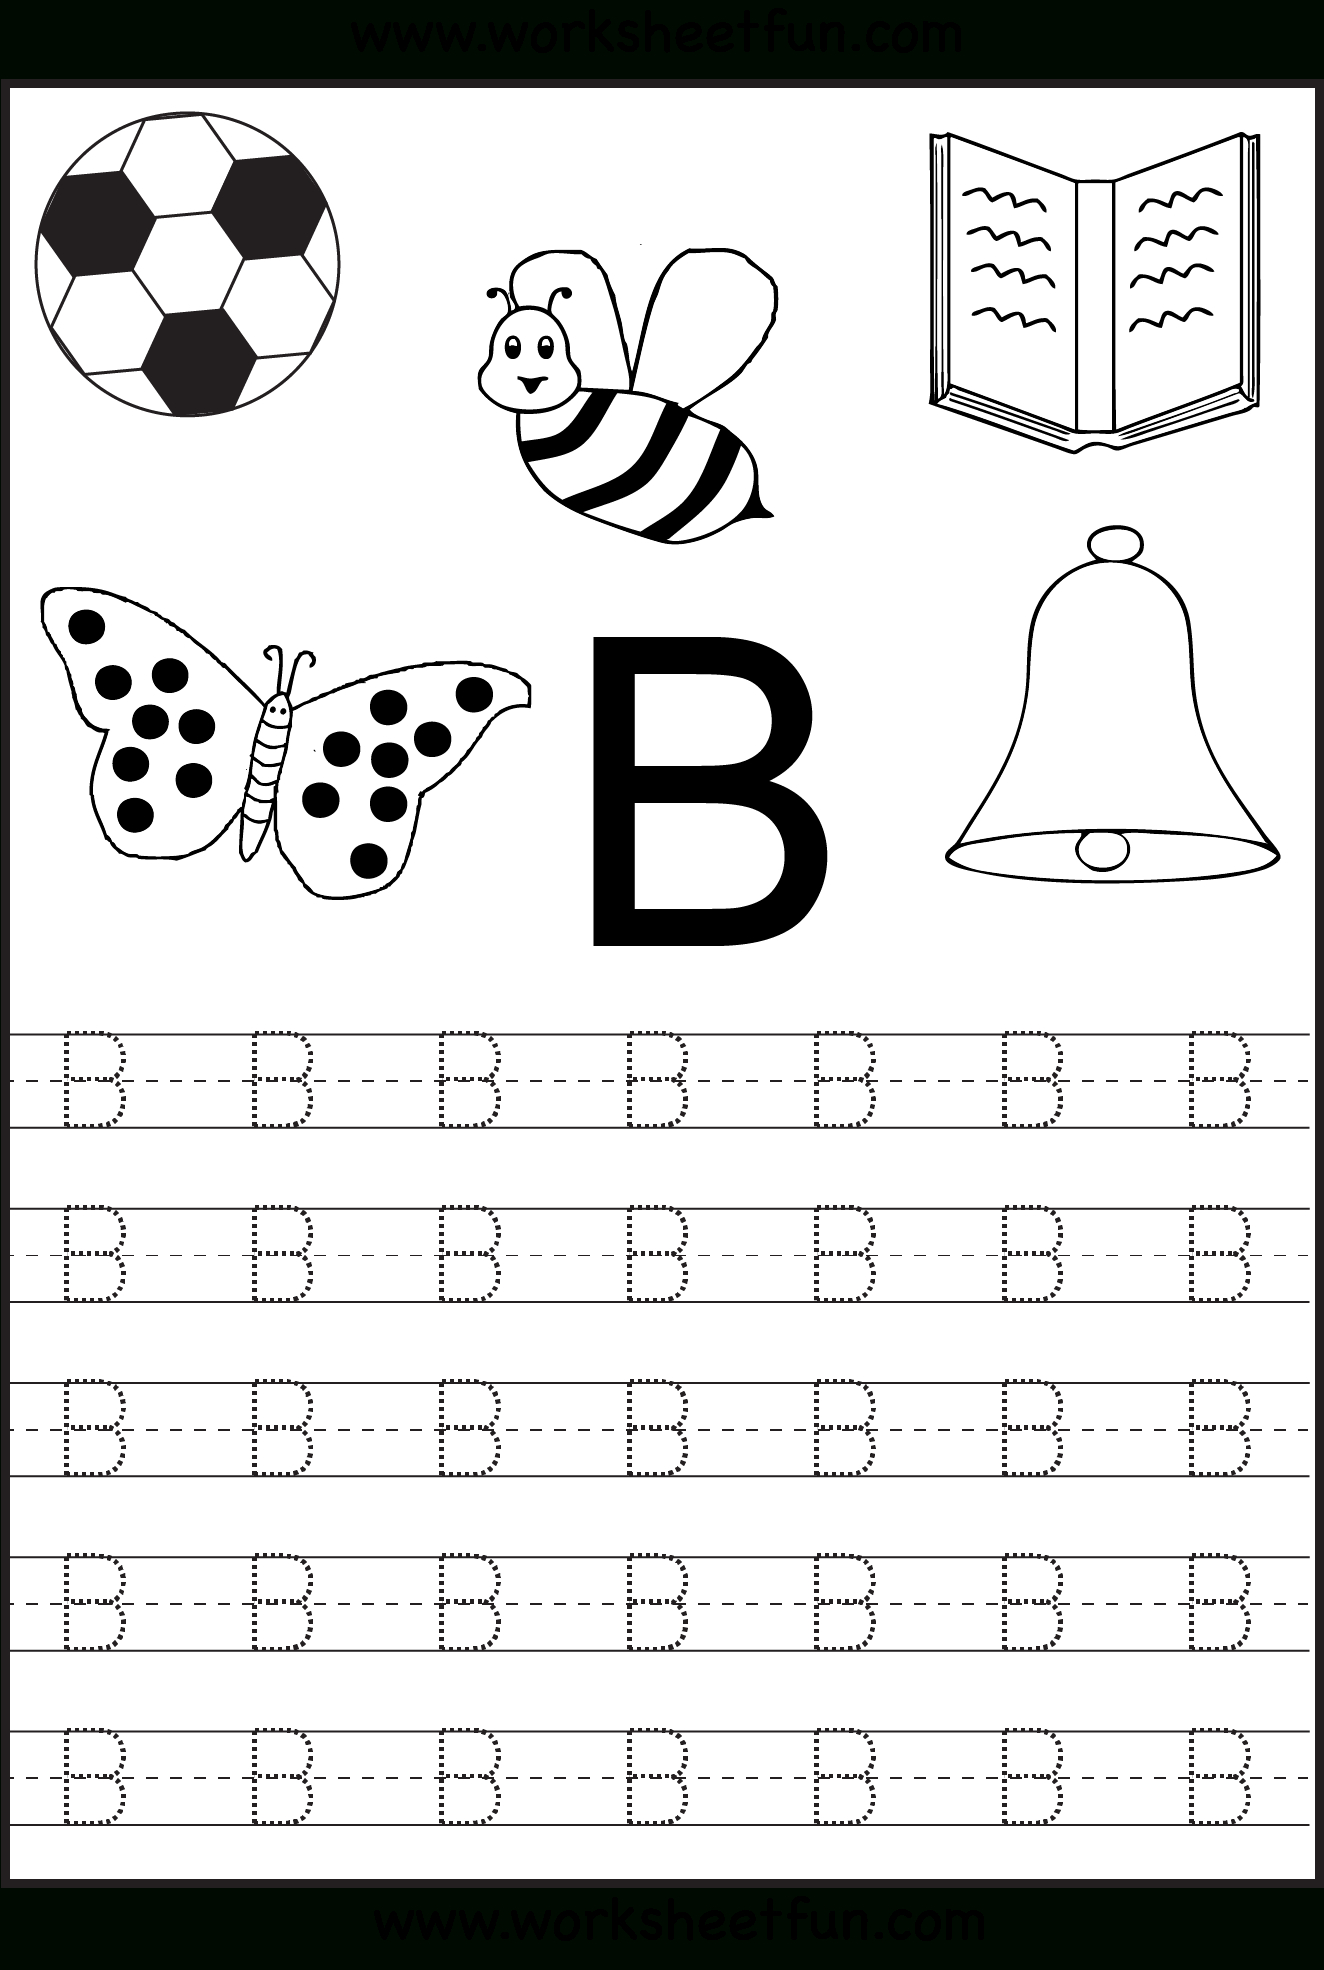 Free Printable Letter Tracing Worksheets For Kindergarten – 26 | Free Printable Alphabet Tracing Worksheets For Kindergarten